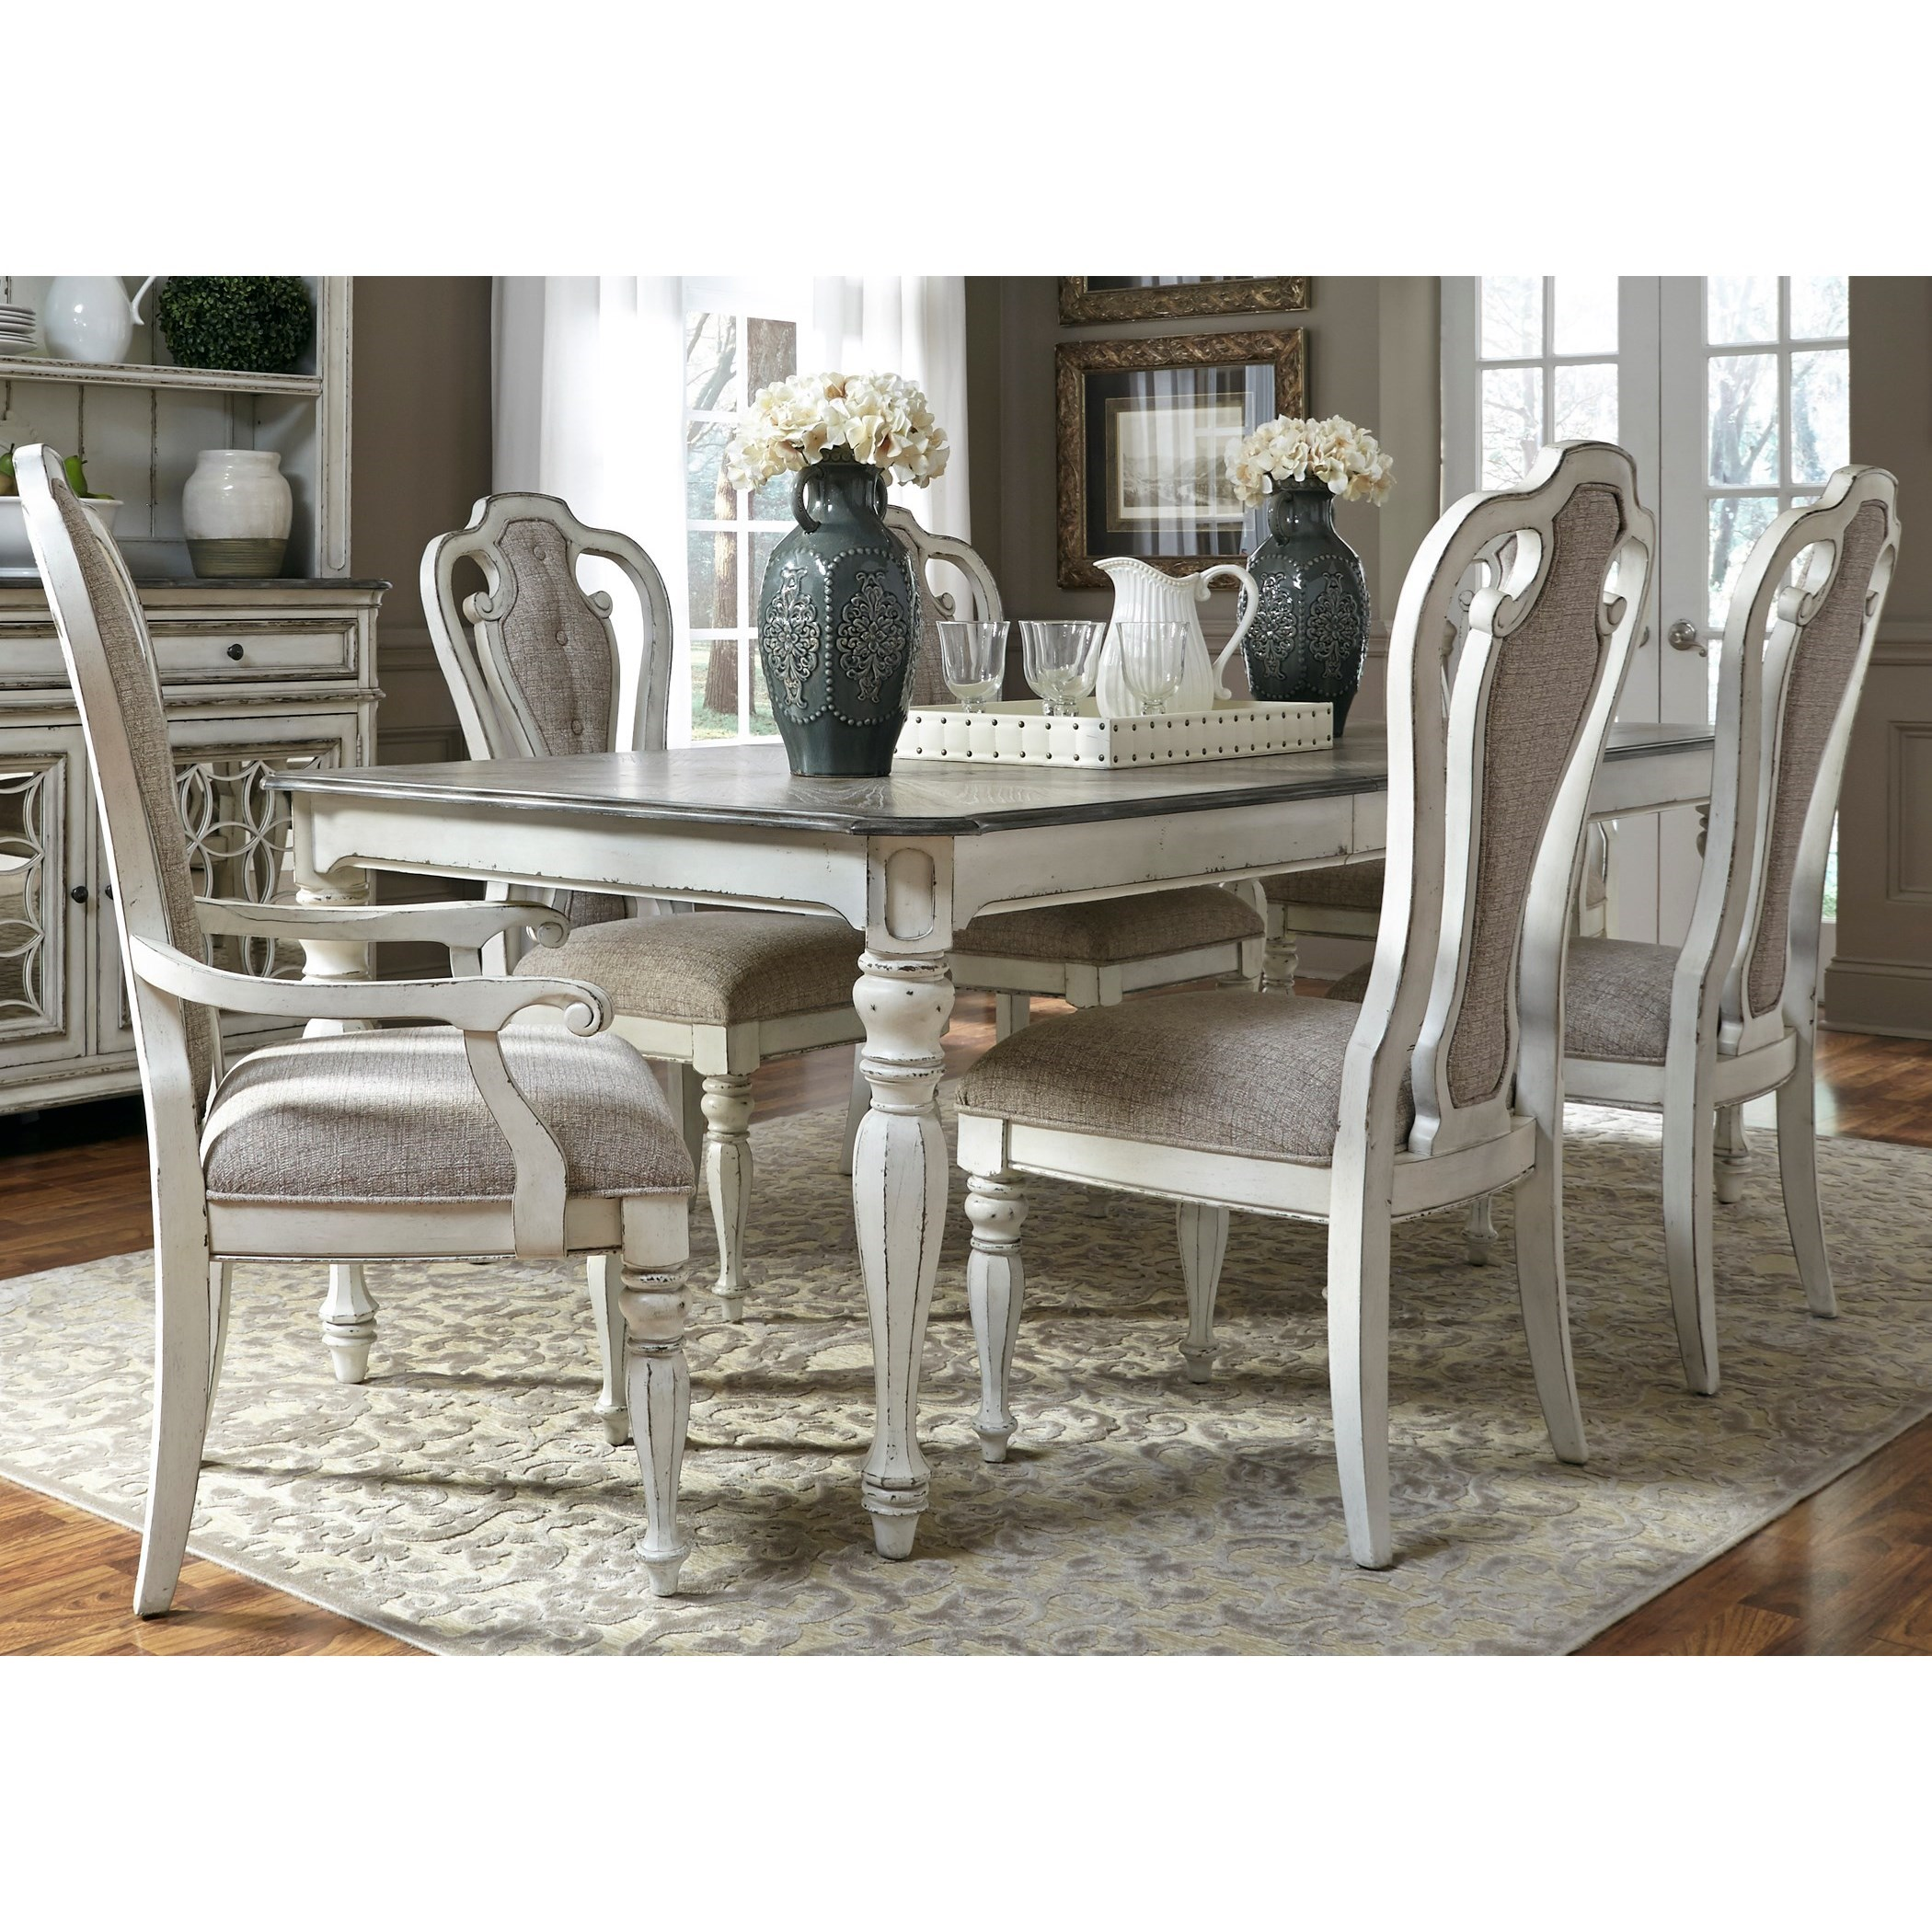 Dining Room Chair Sets Magnolia Manor Dining 7 Piece Rectangular Table Set With Leaf By Liberty Furniture At Great American Home Store